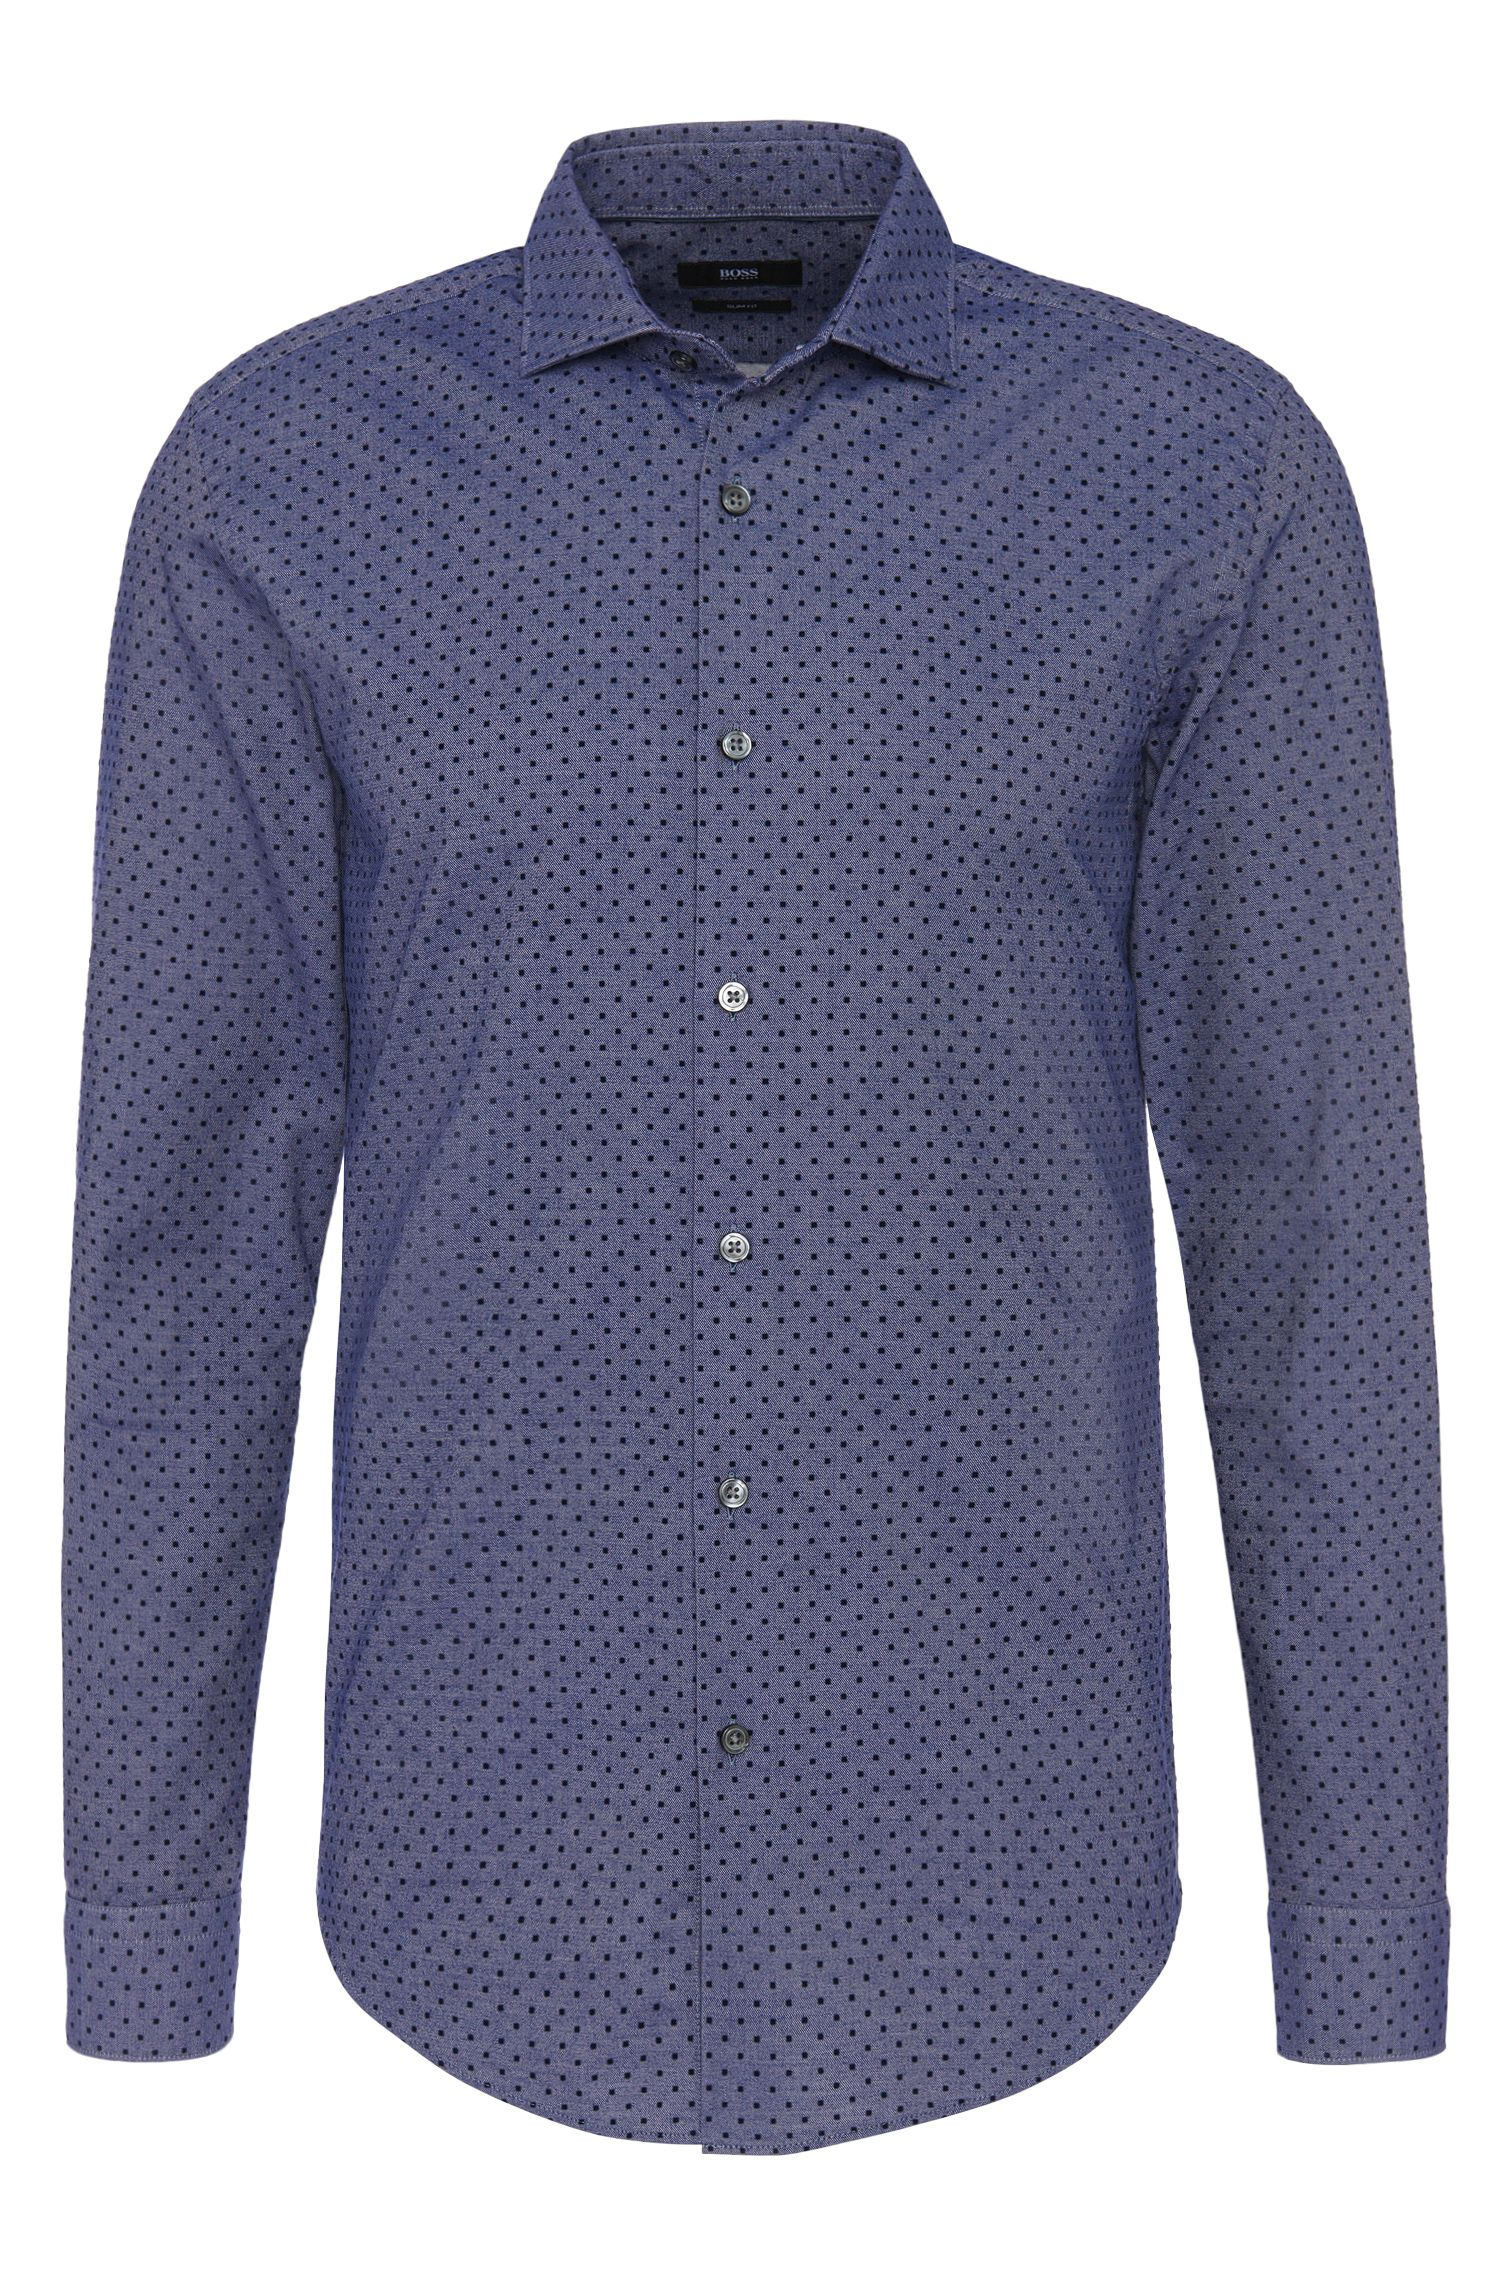 'Ridley' | Slim Fit, Cotton Embroidered Button Down Shirt